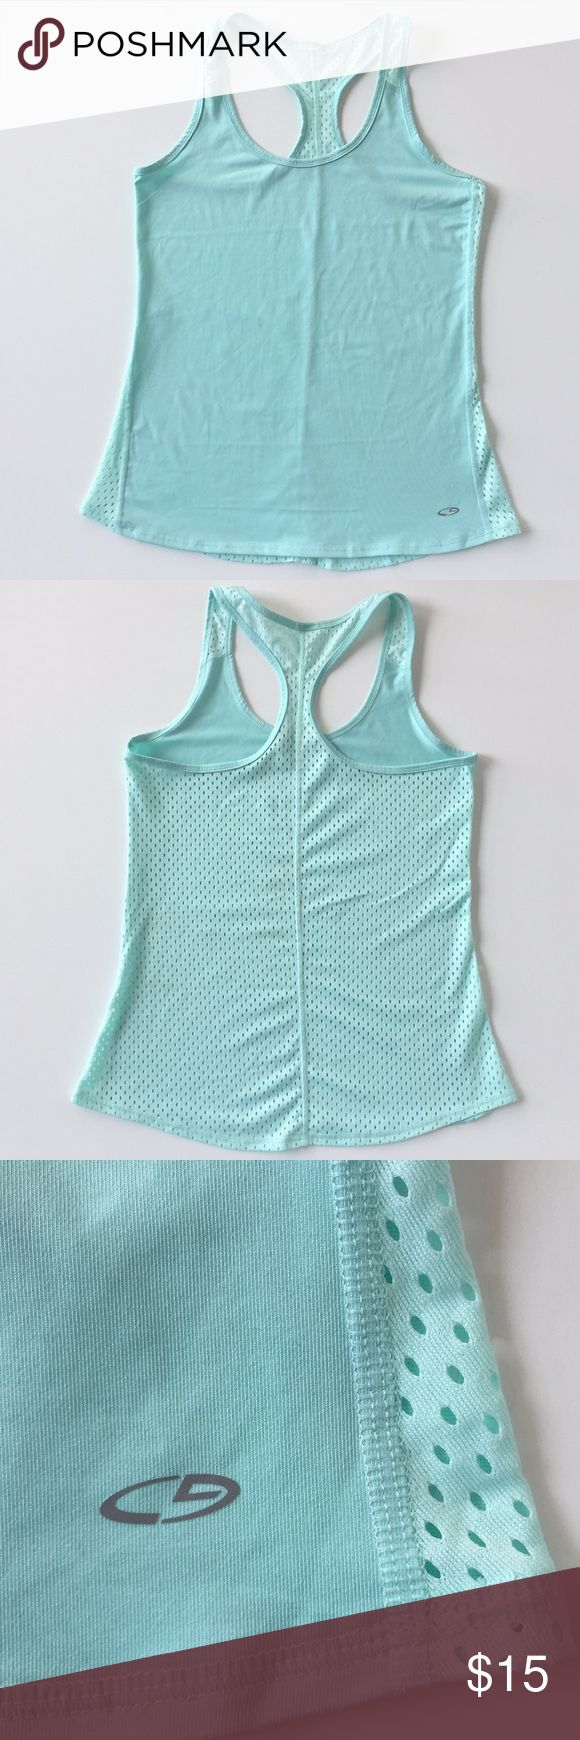 C9 by Champion Mint Green Workout Tank Top Light weight with a vented back to stay cool C9 by Champion tank top. Fitted but not tight. Original tag was removed for comfort. Minimal wear. Smoke free home. C9 by Champion Tops Tank Tops